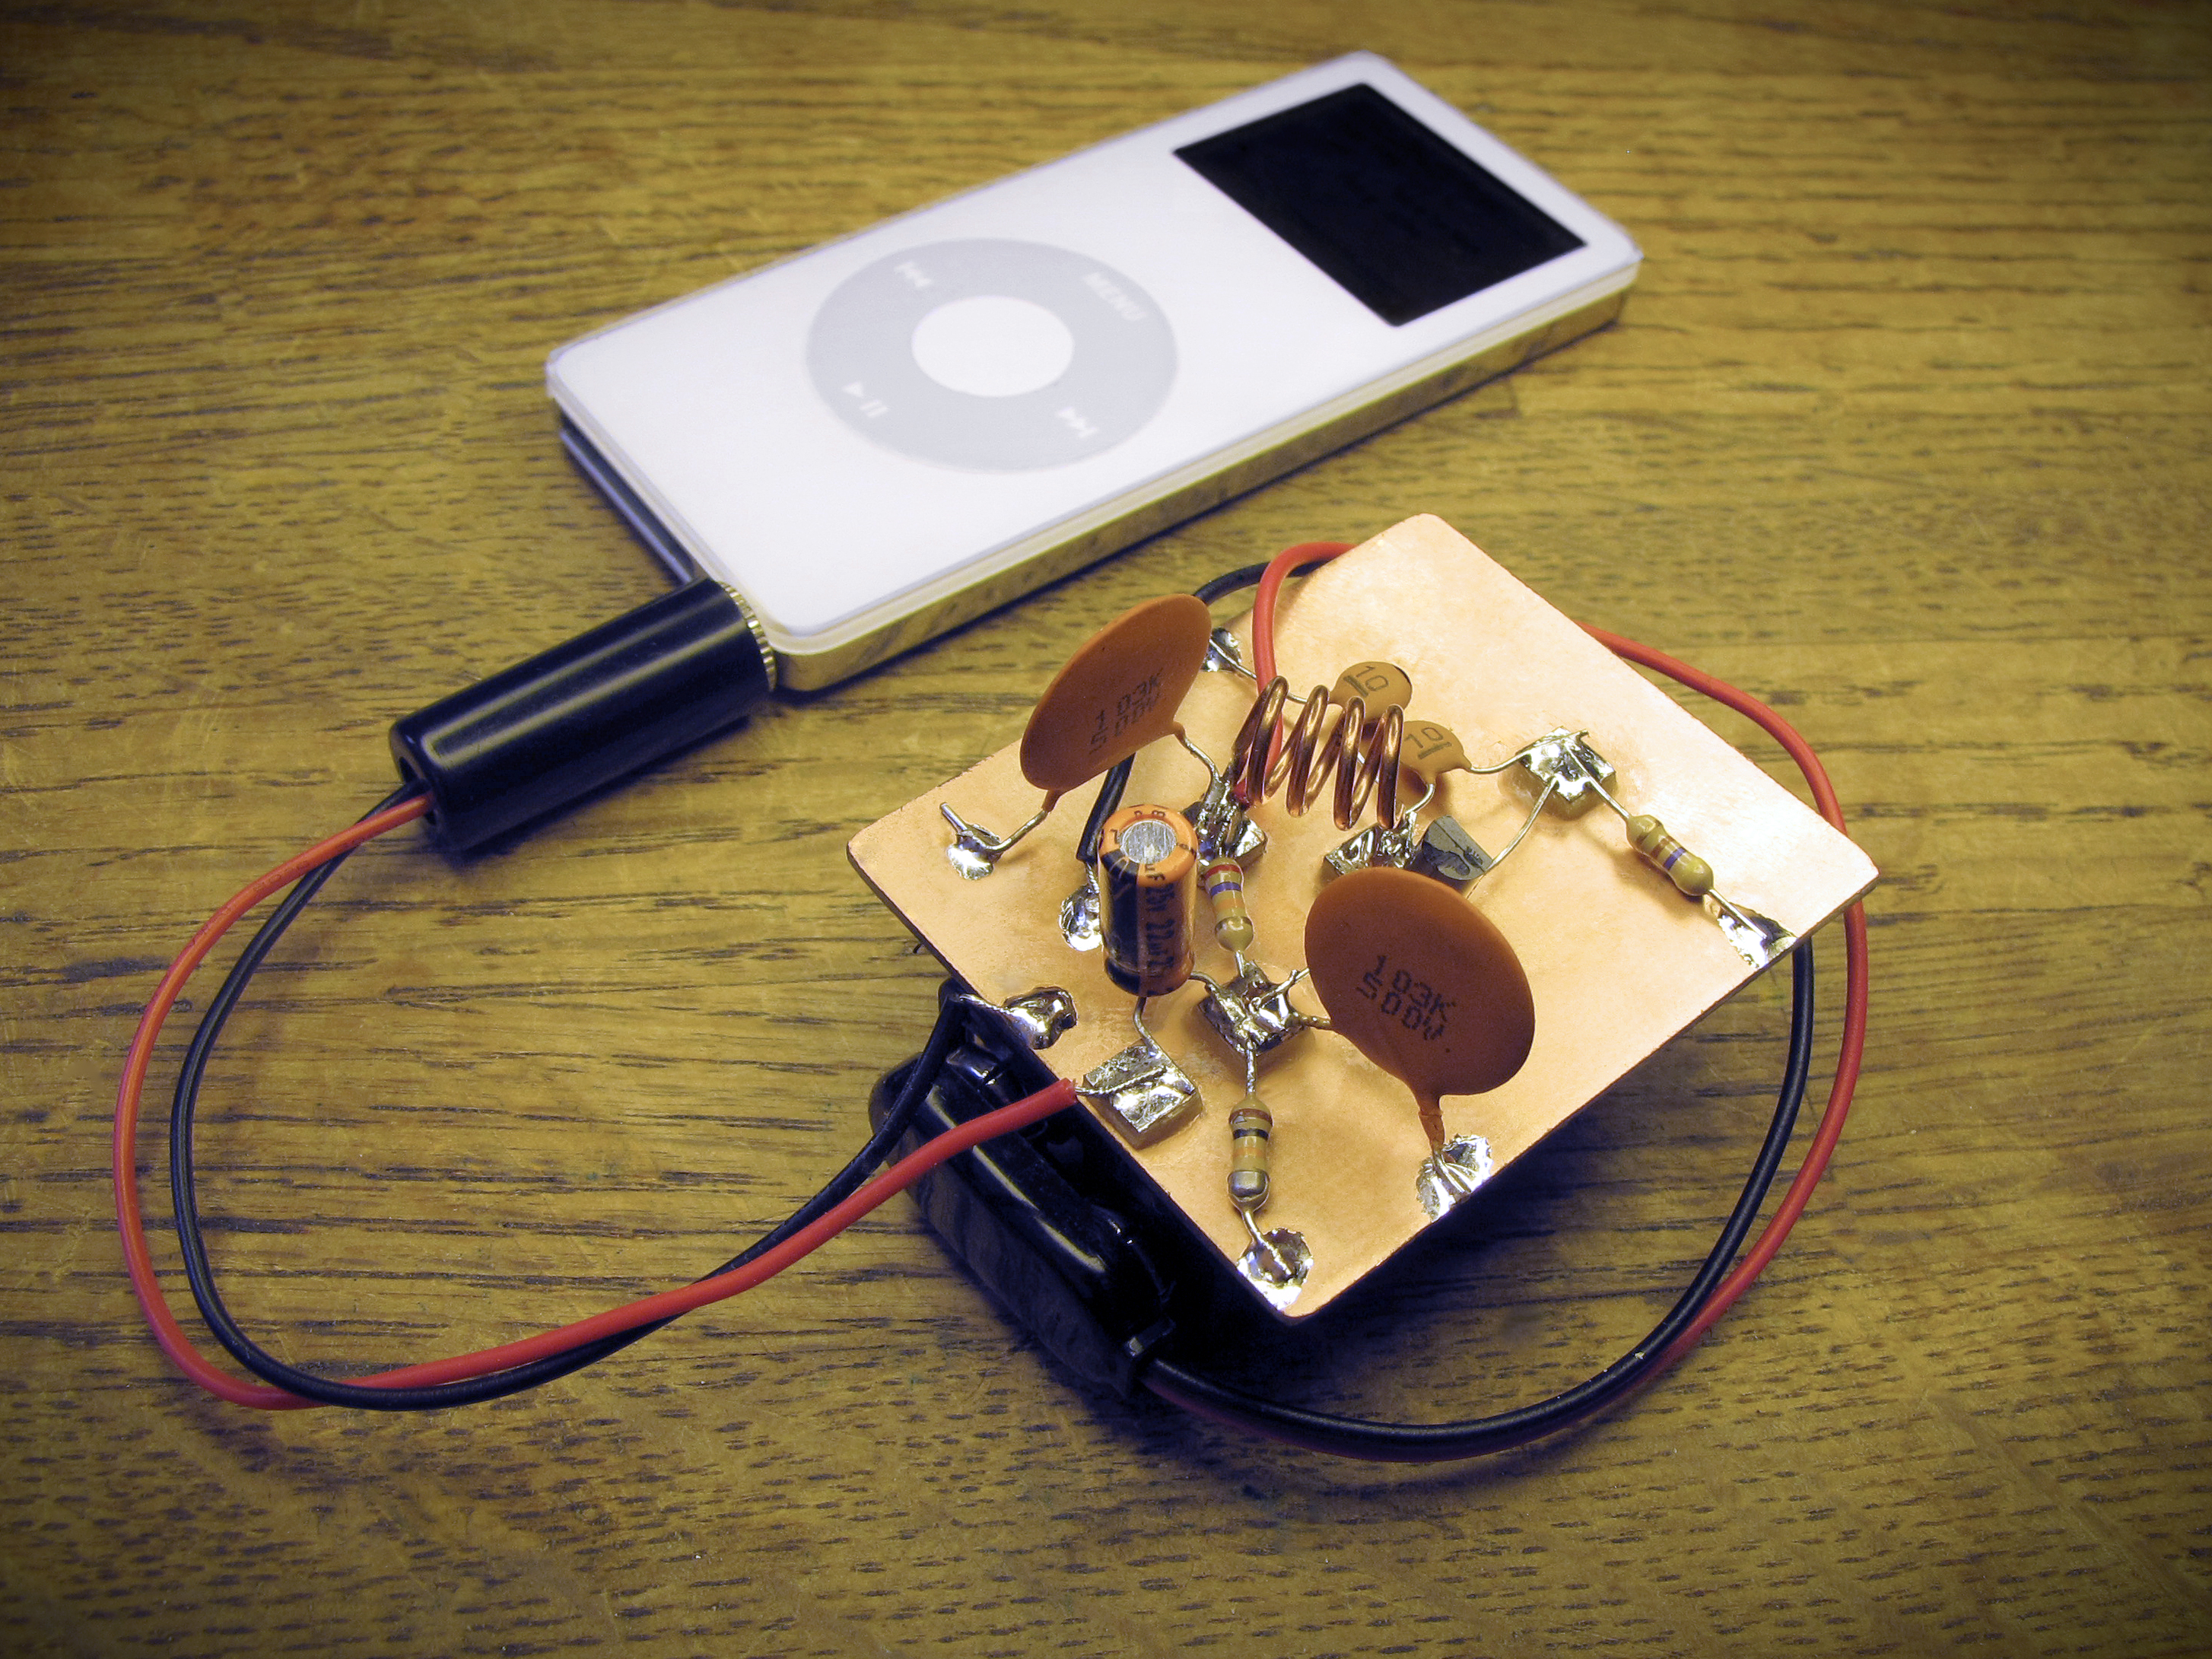 Super Simple Ipod Fm Transmitter Make Stereofmtransmittercircuitpng